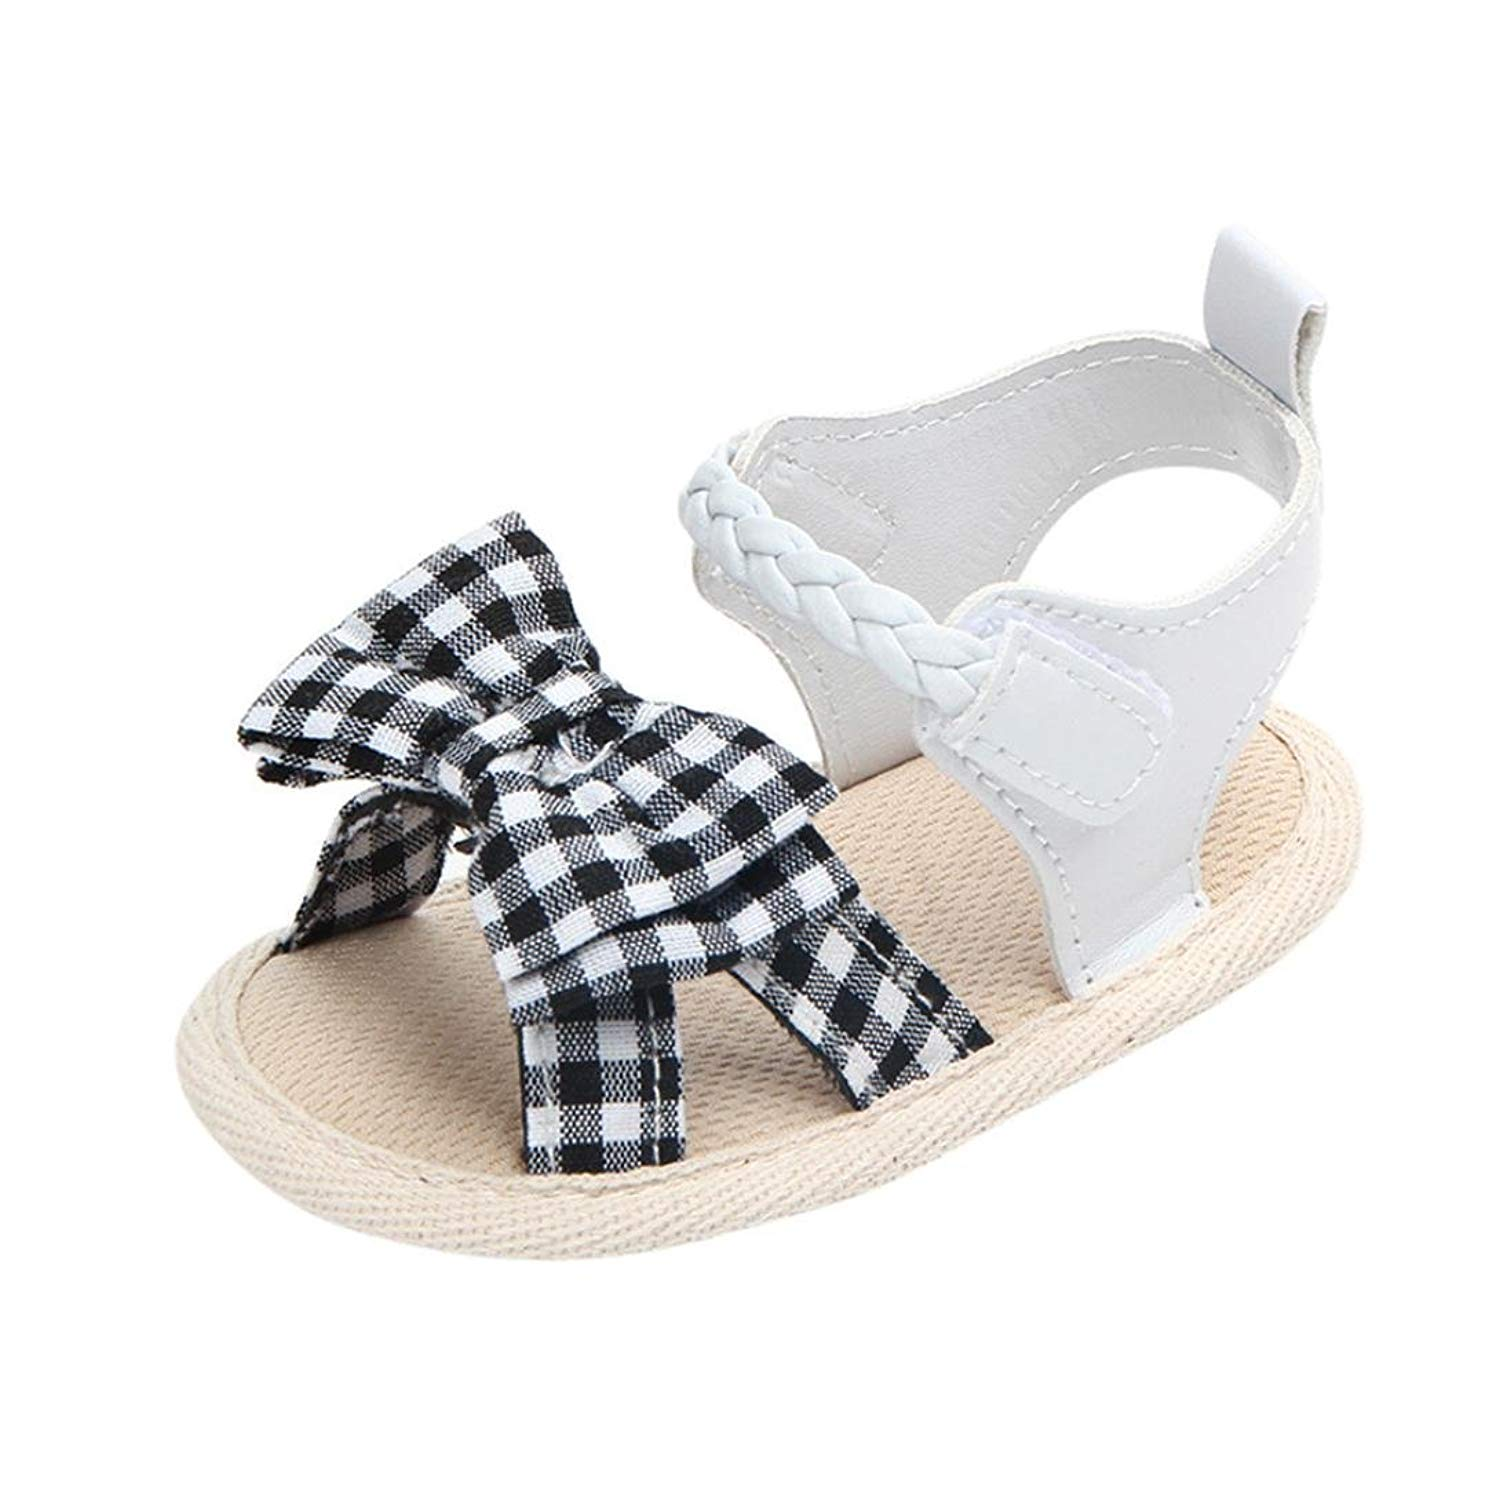 1fd2b10d9e6 Get Quotations · WOCACHI Baby Girls Shoes Summer Bow Plaid Soft Weave Crib  Shoes for Infant Girls Anti-